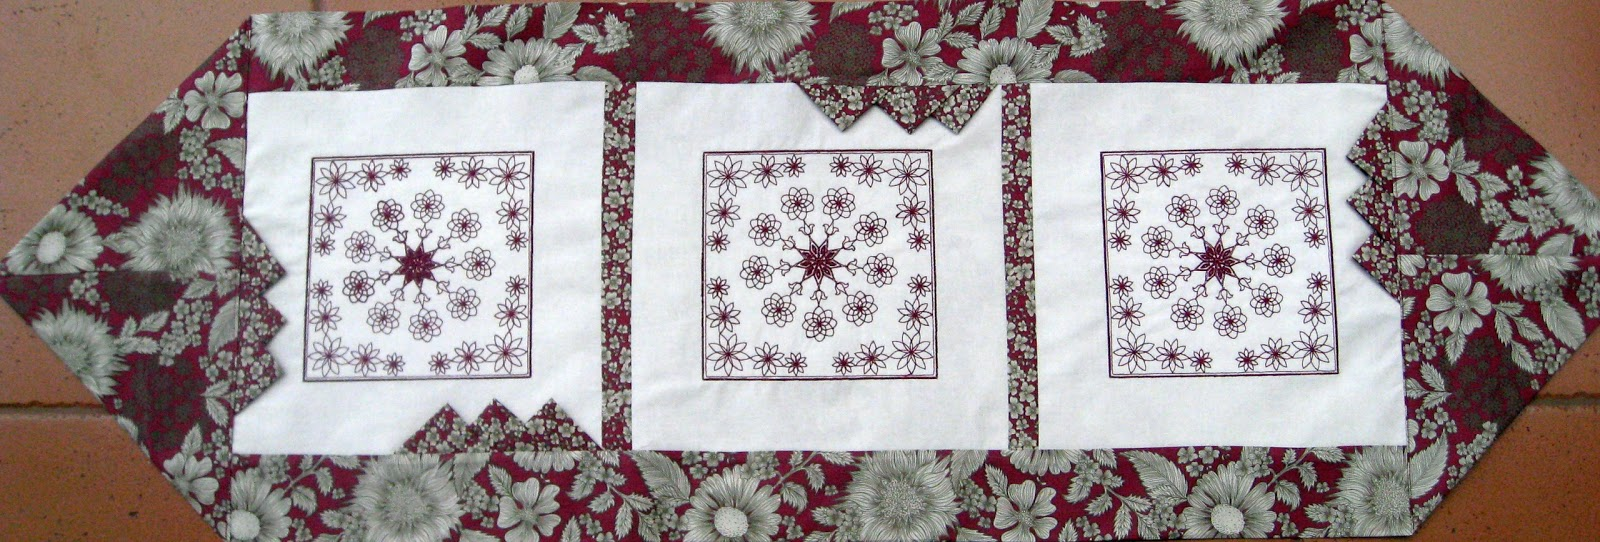 Vicki 39 s fabric creations rangoli embroidered not quite for 10 minute table runner pattern